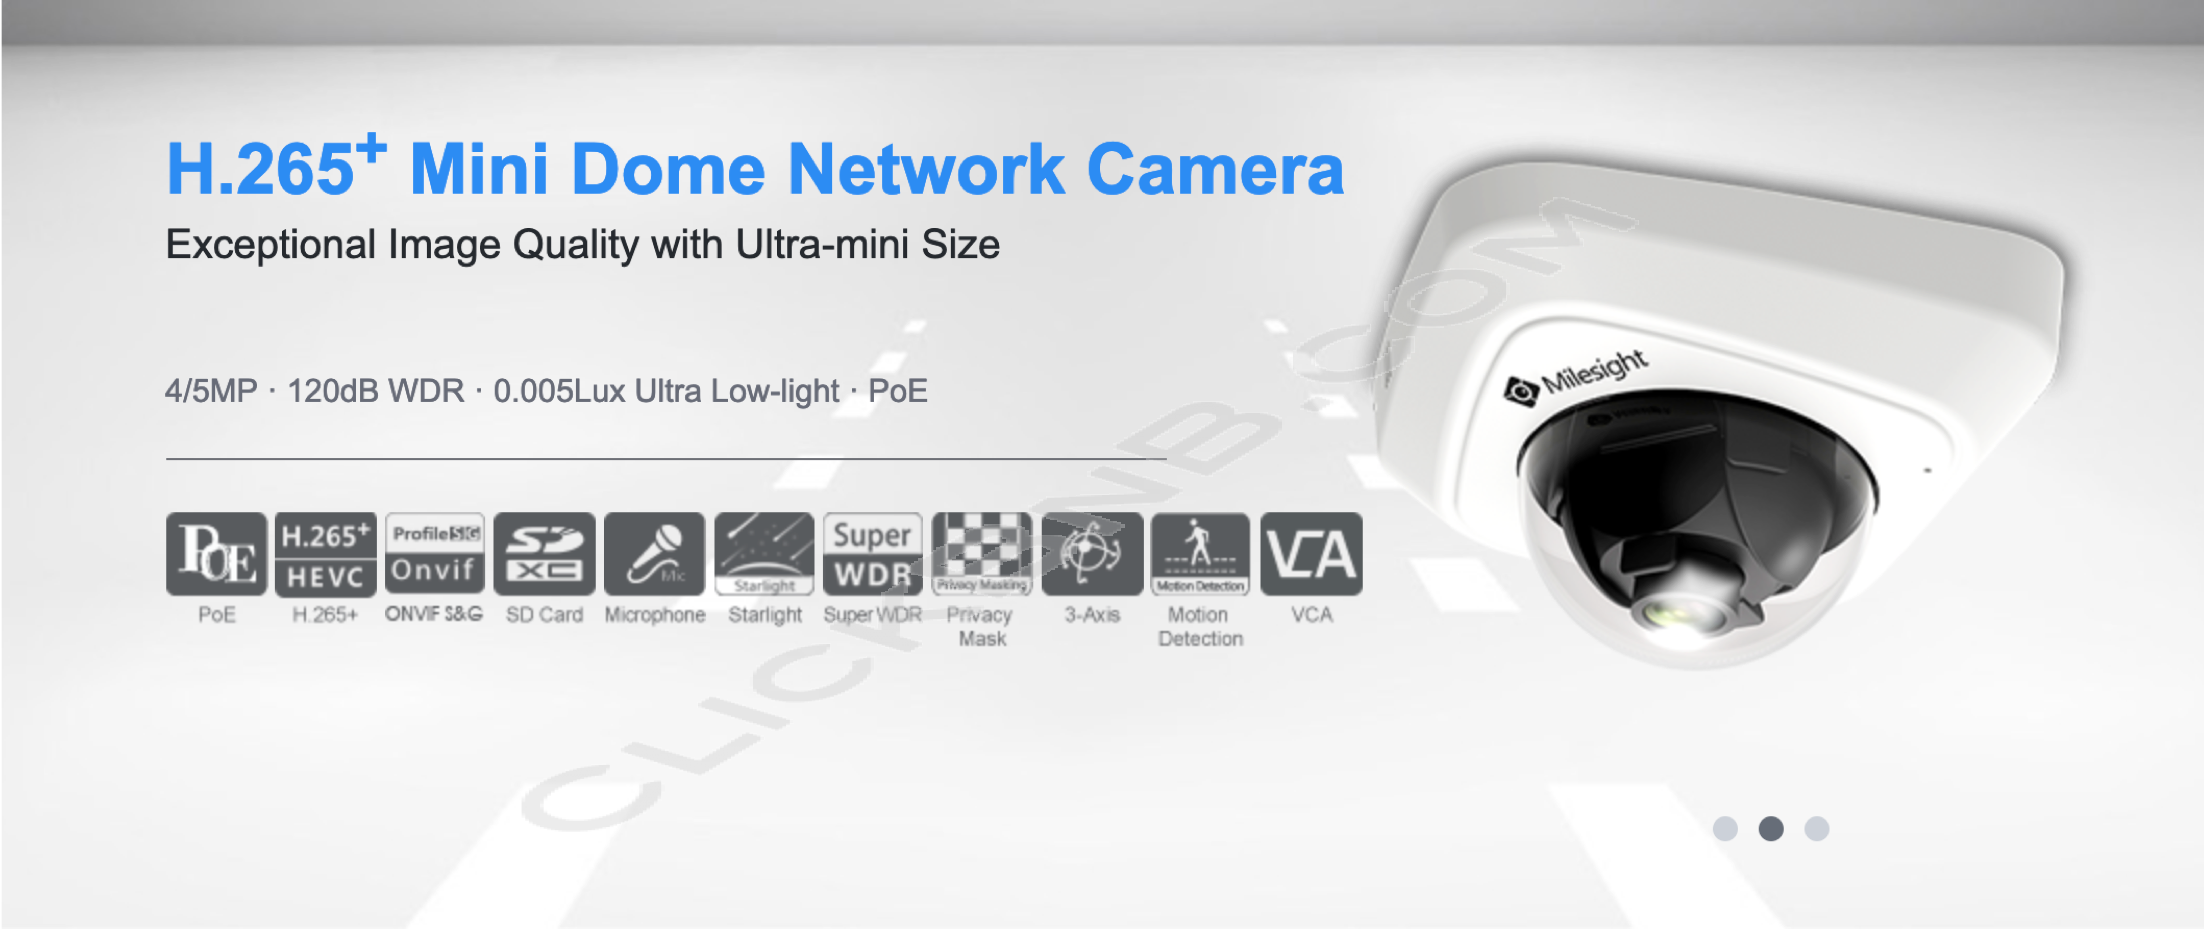 Milesight MS-C4481-PB - 4MP H.265+ Mini Dome Network IP Camera